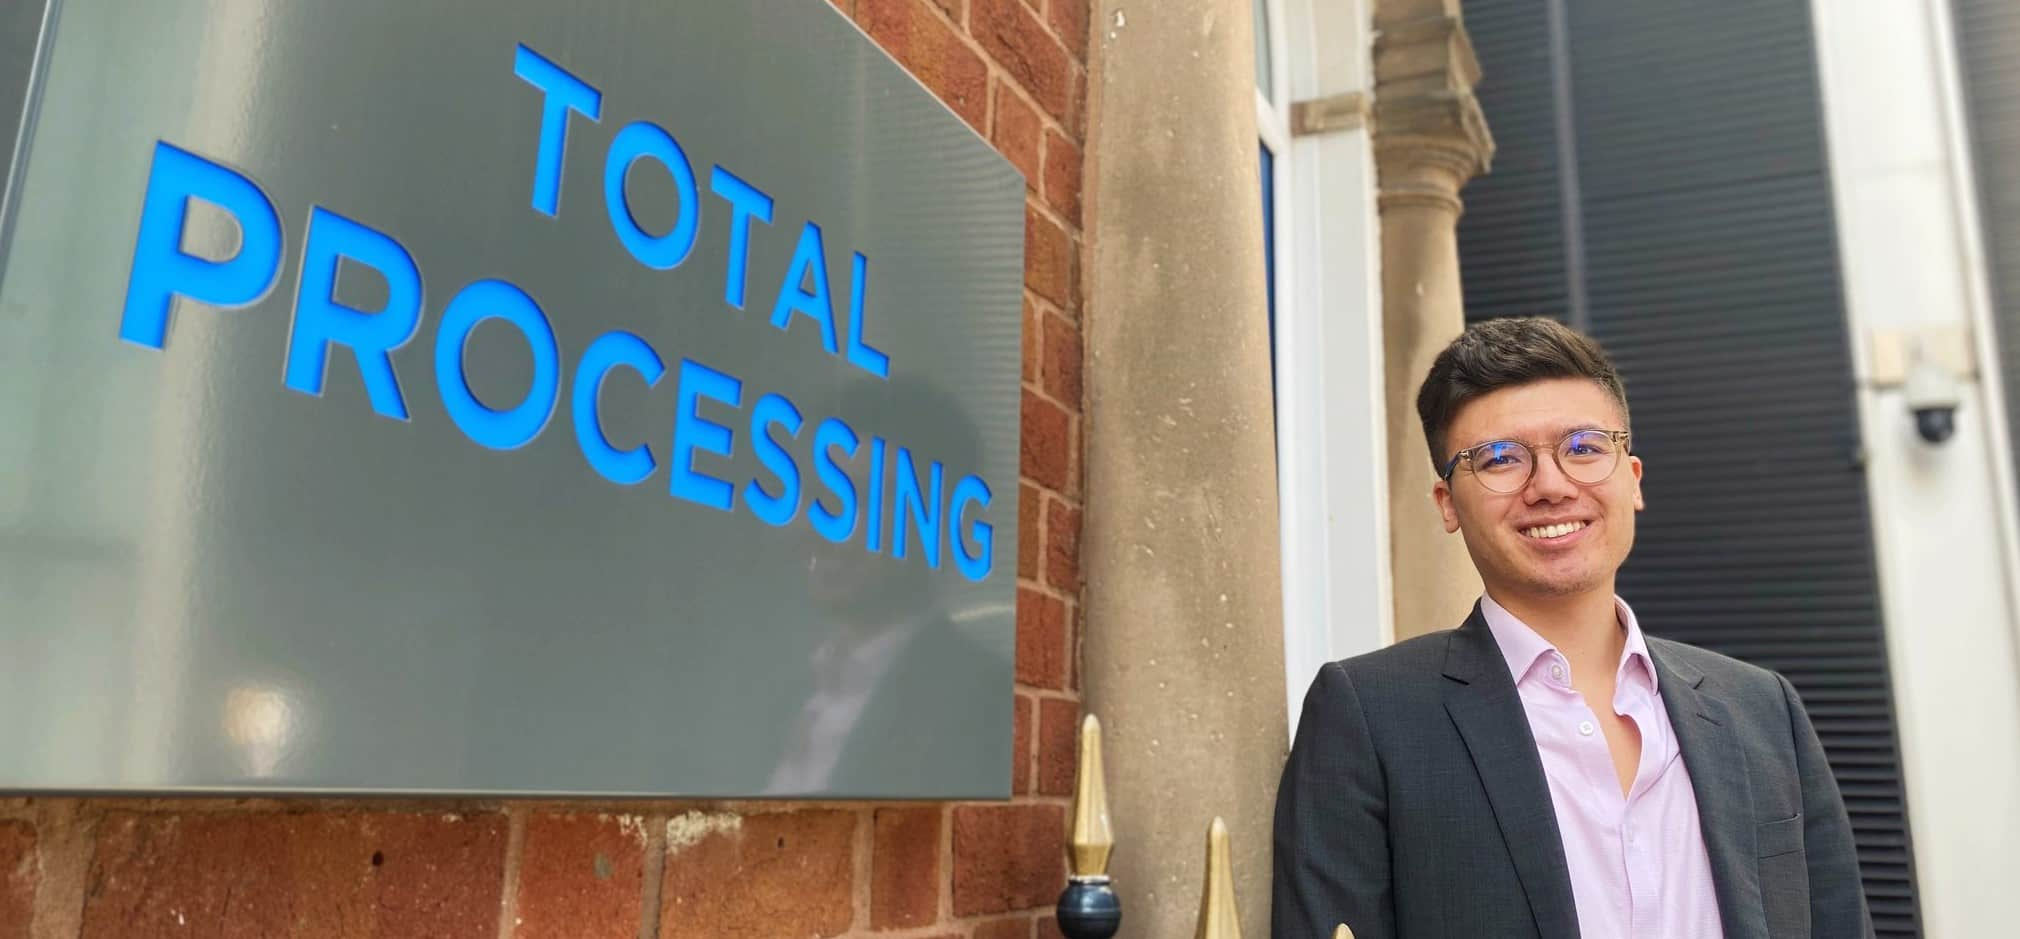 Total Processing secures £5 million Debt finance from BOOST&Co.